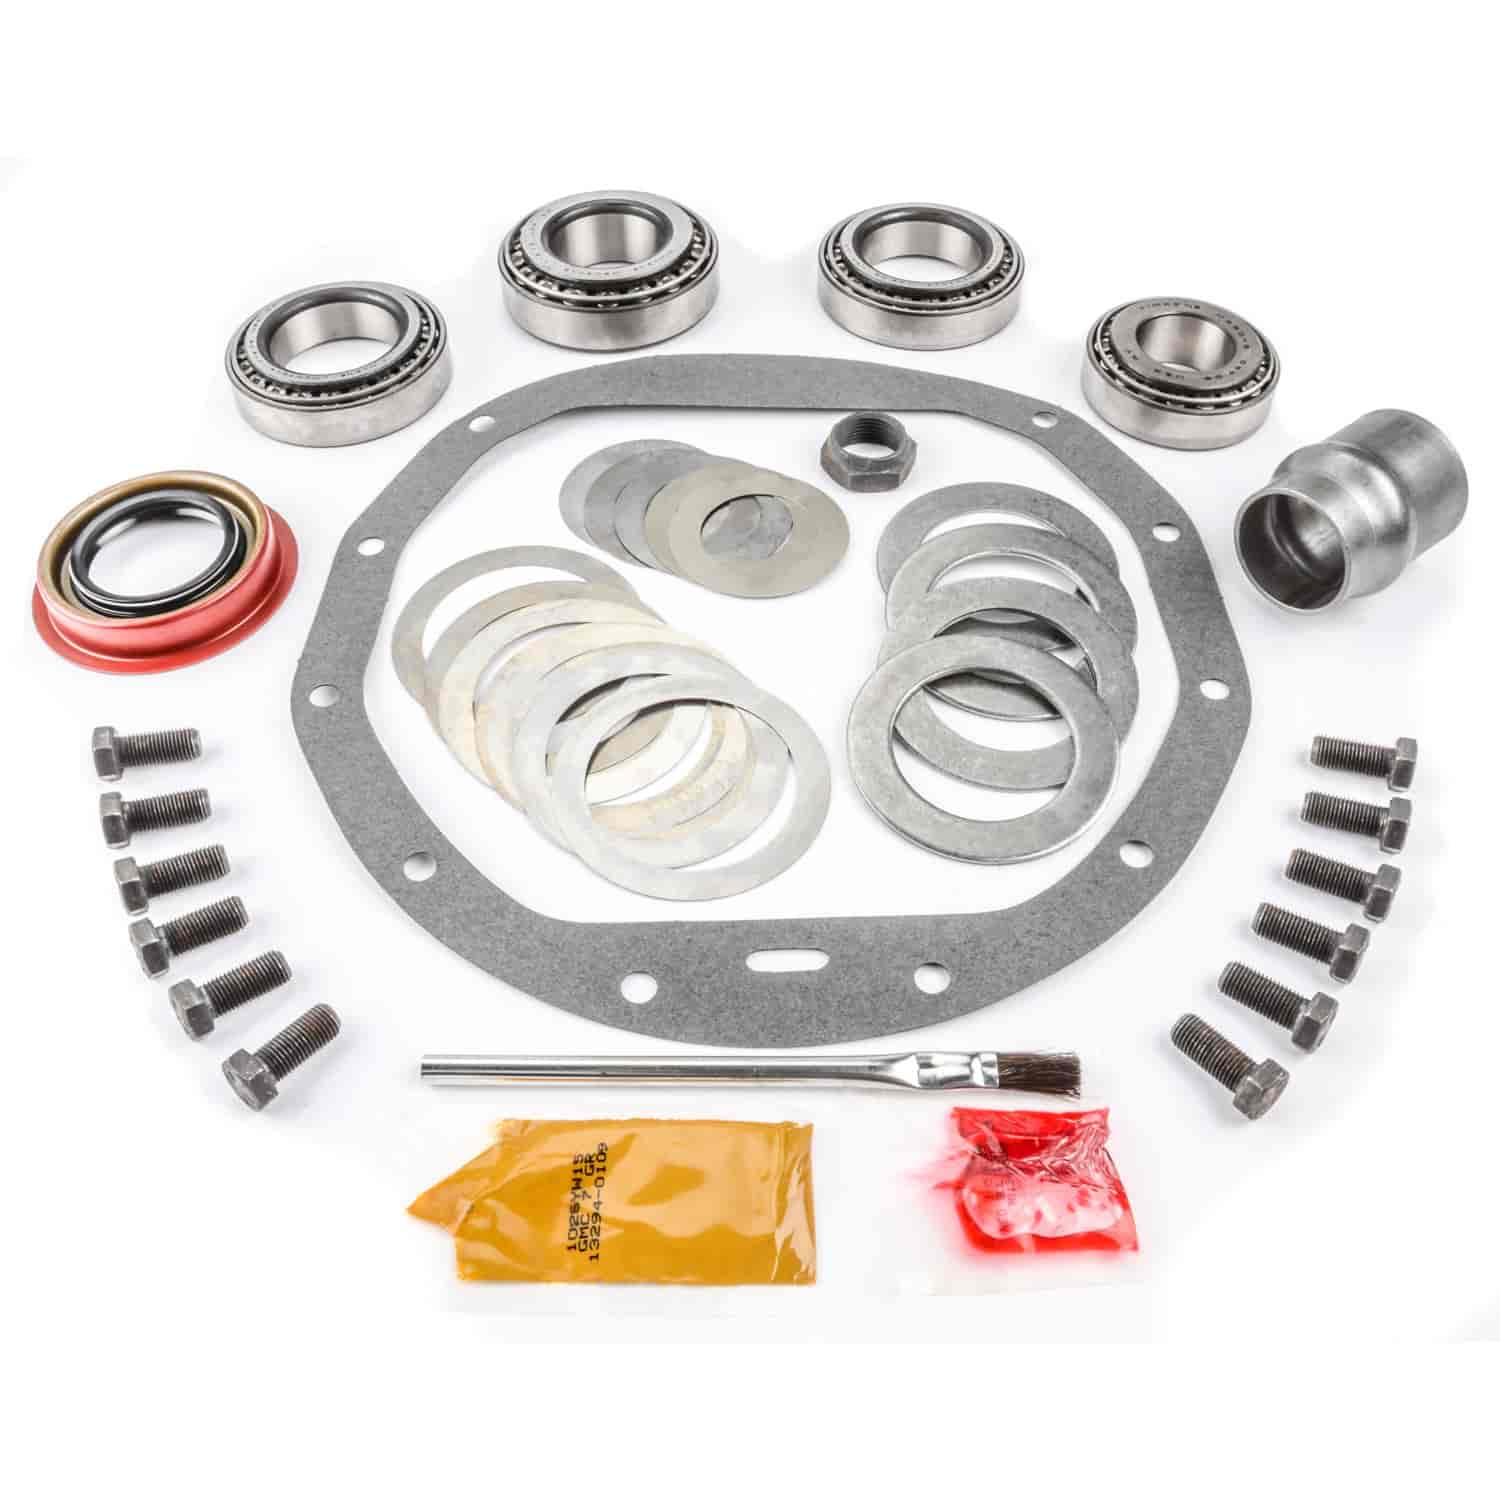 JEGS Performance Products 61227 - JEGS Differential Installation Kits with Timken Bearings